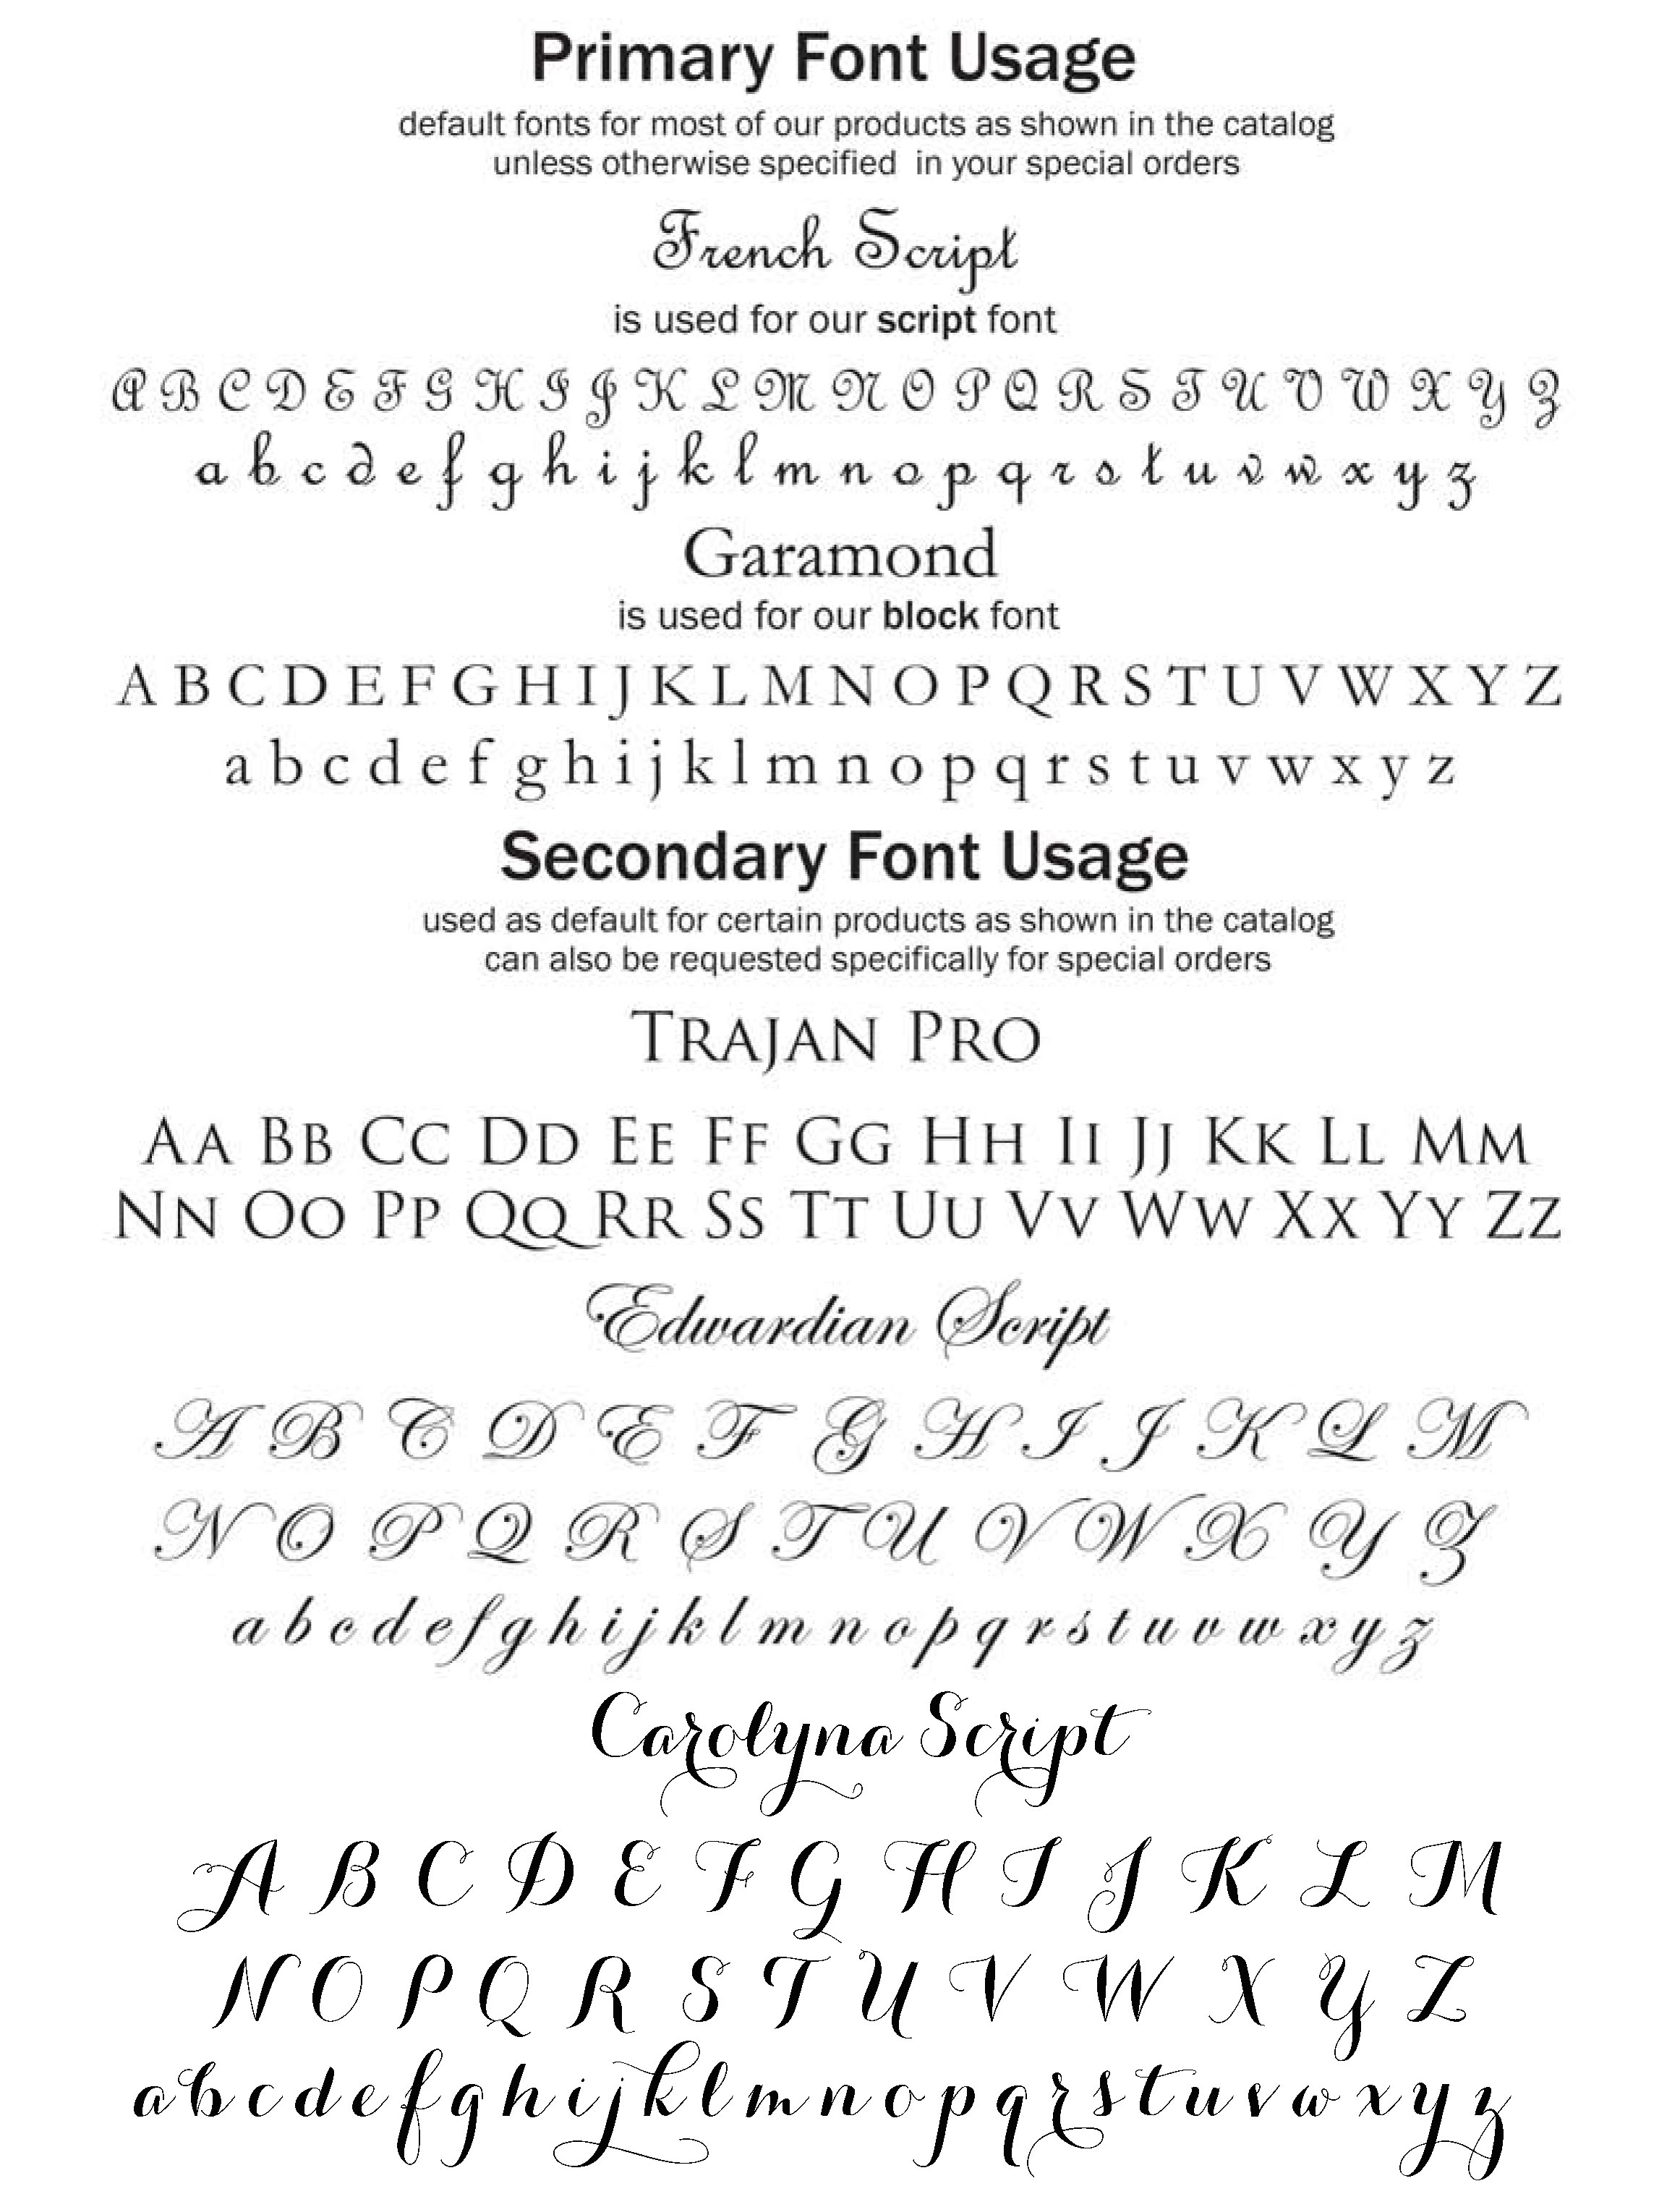 Marye-Kelley Font Usage